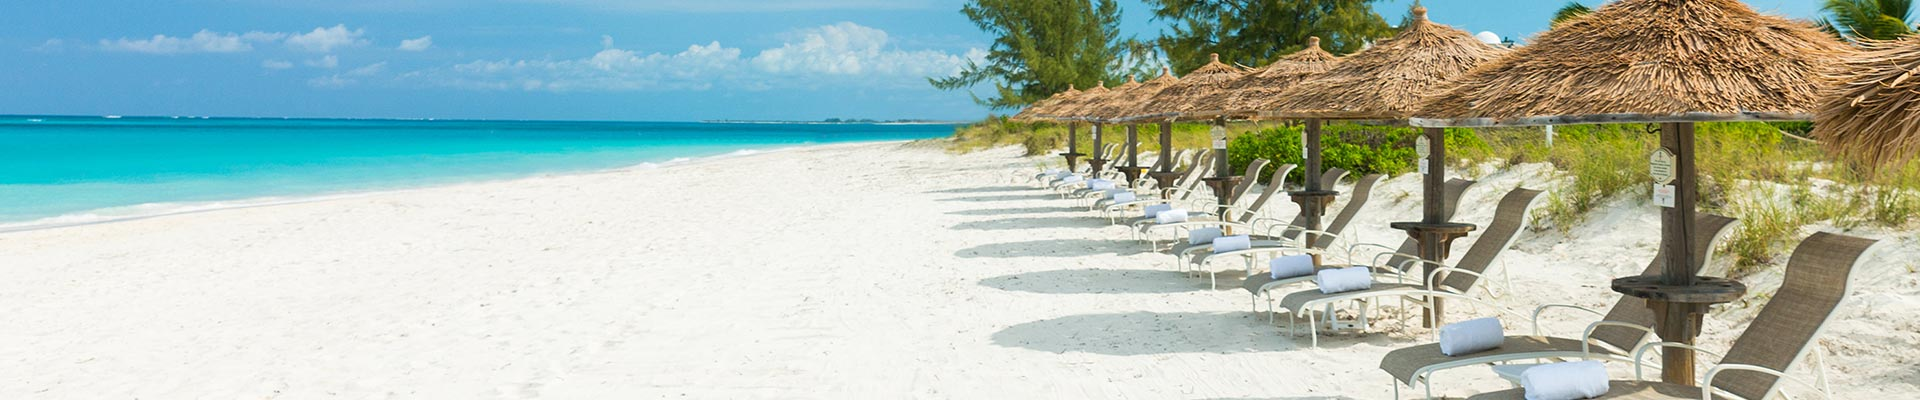 Weddings at the sands at grace bay grace bay beach turks and caicos weddings junglespirit Choice Image